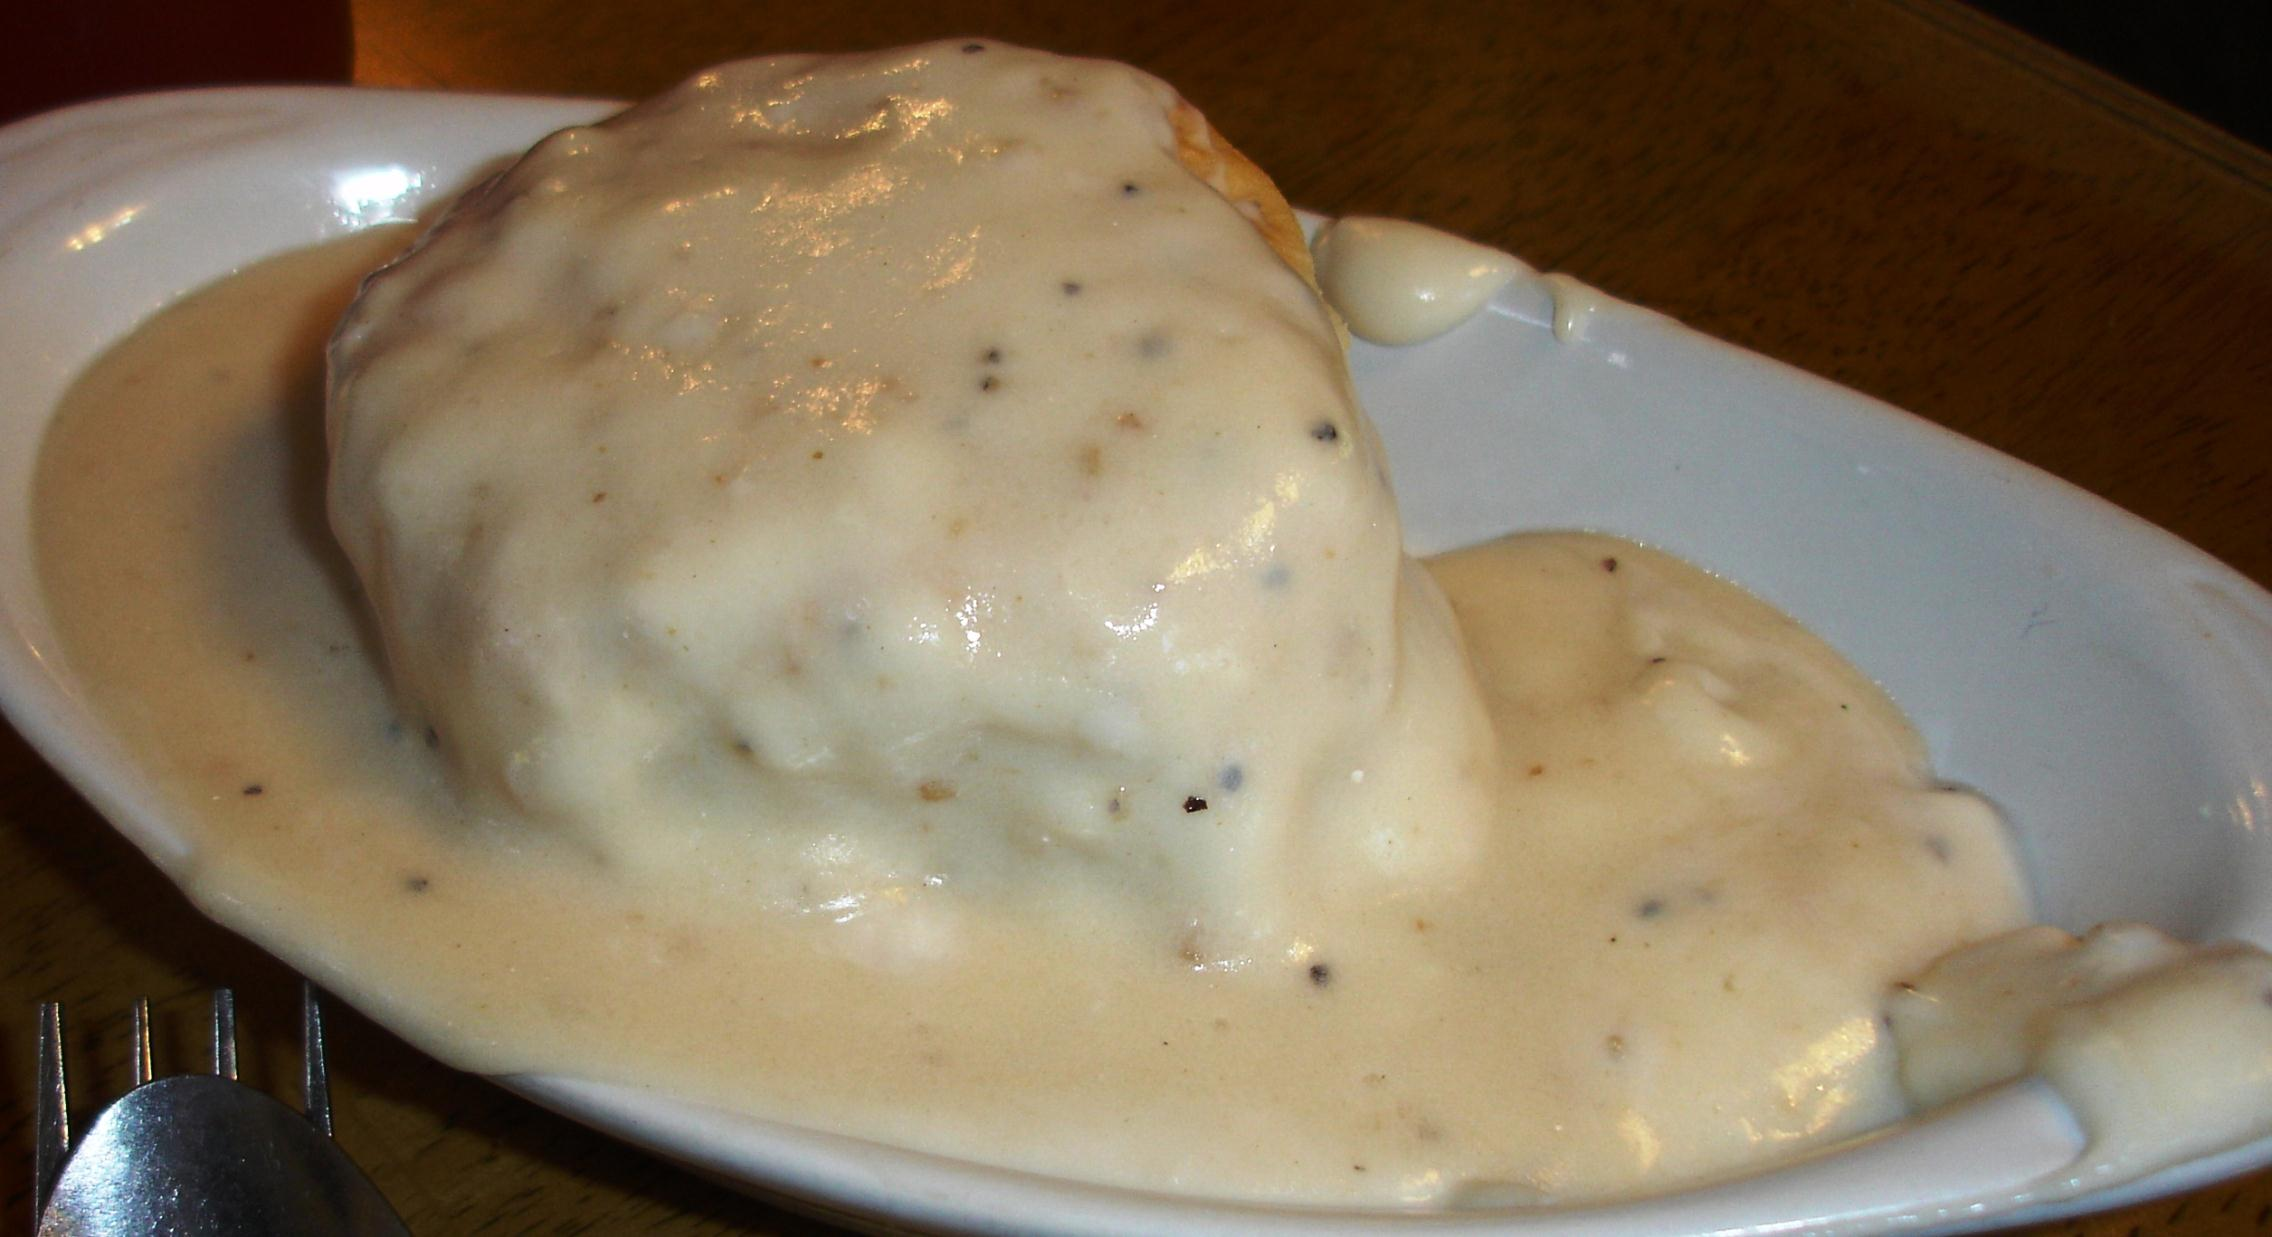 ... a biscuit, also covered with gravy if you wish. A CFS breakfast is a lot of food.